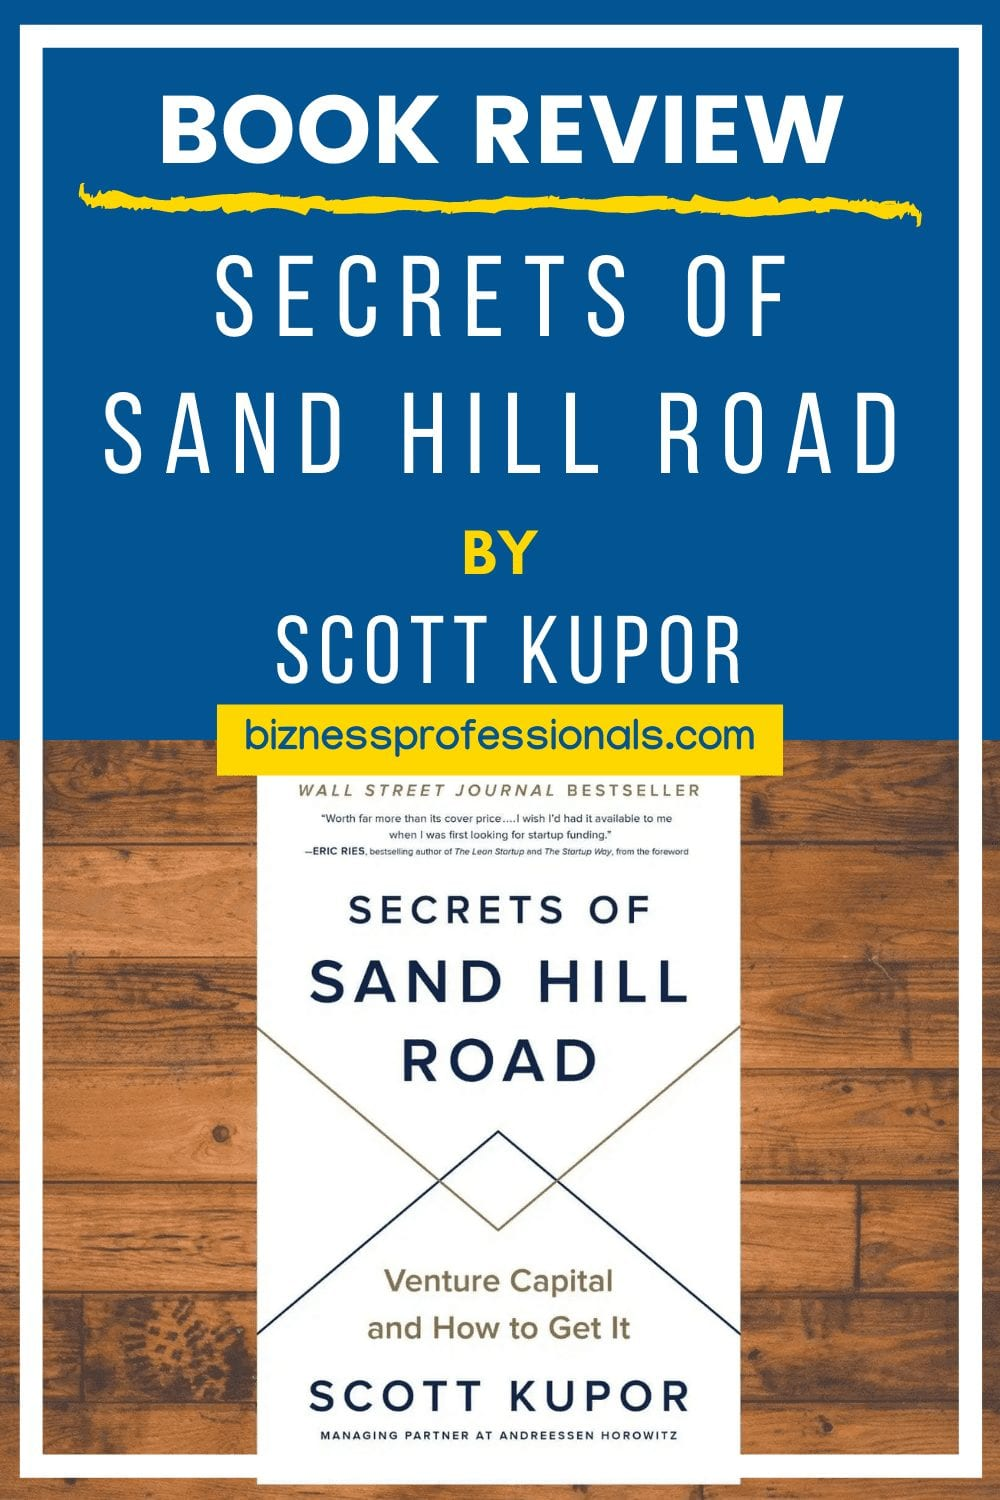 book review on secrets of sand hill road